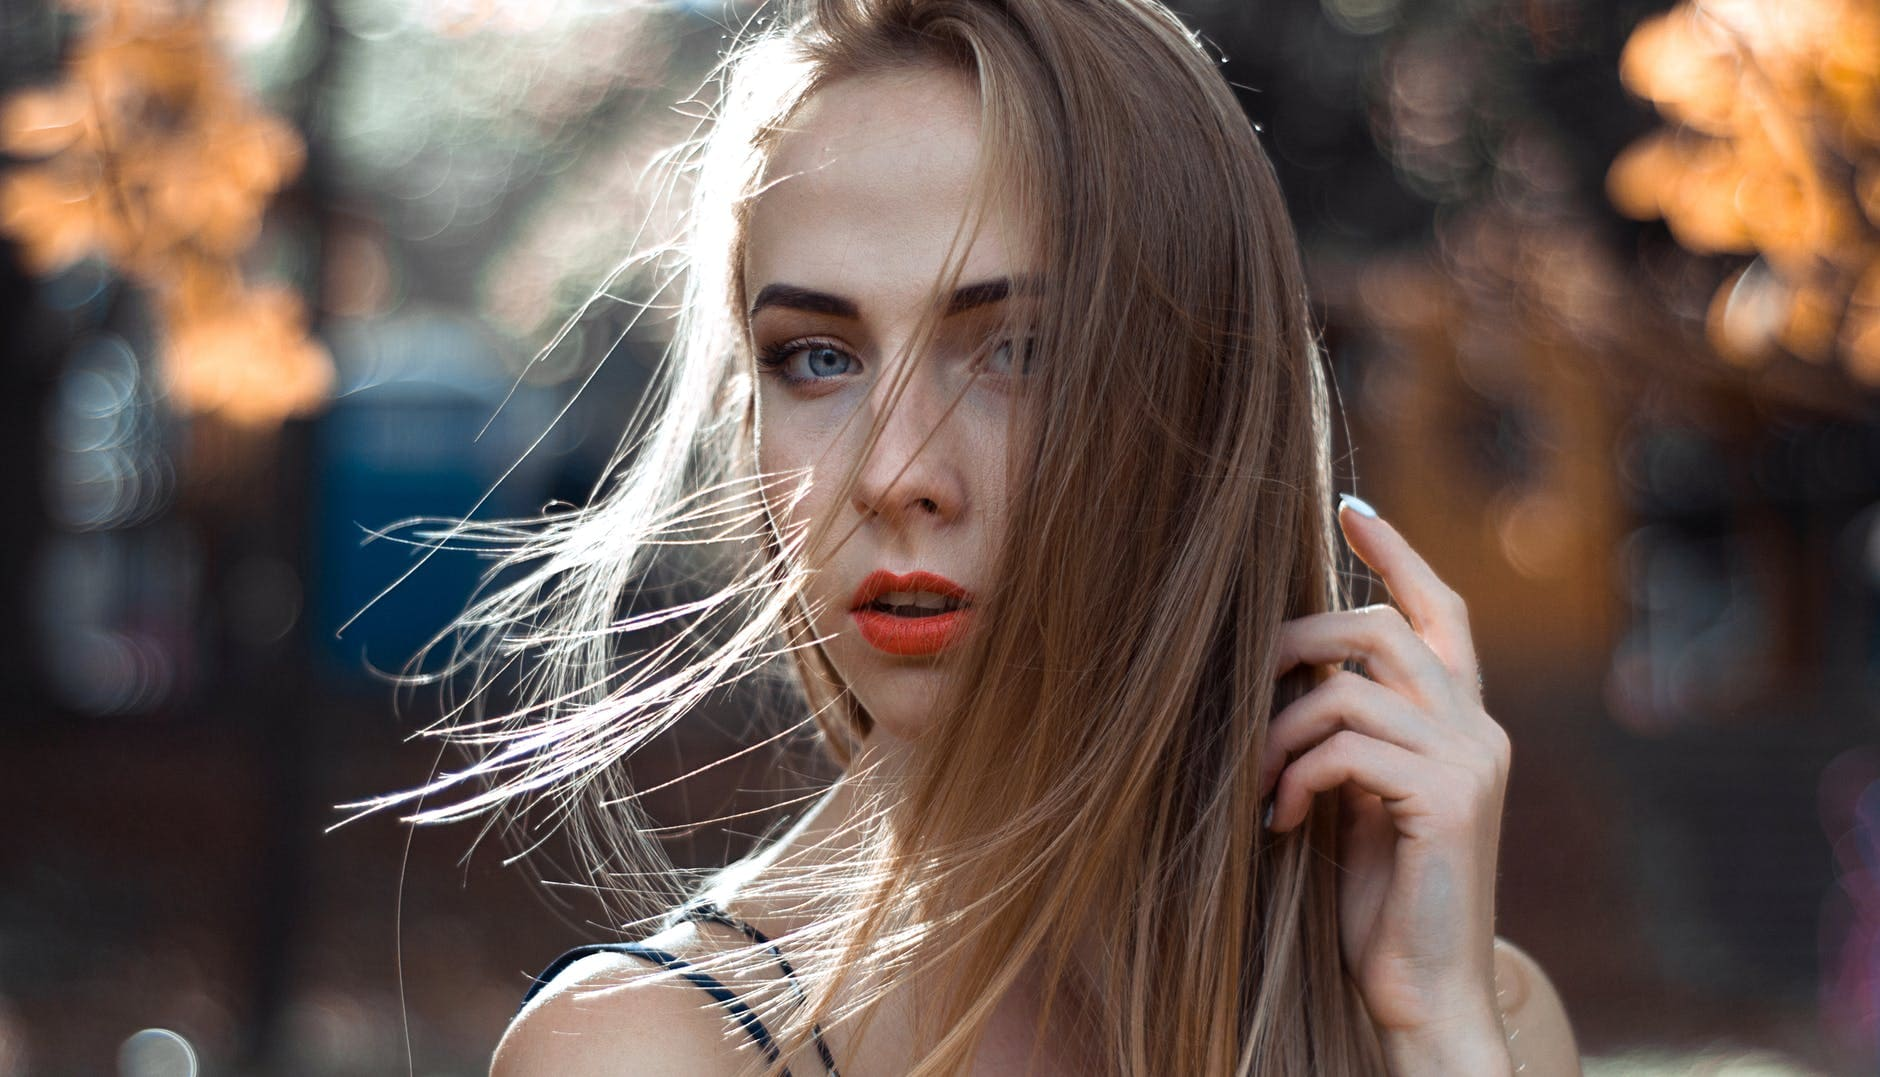 What are the foods that strengthen the hair?